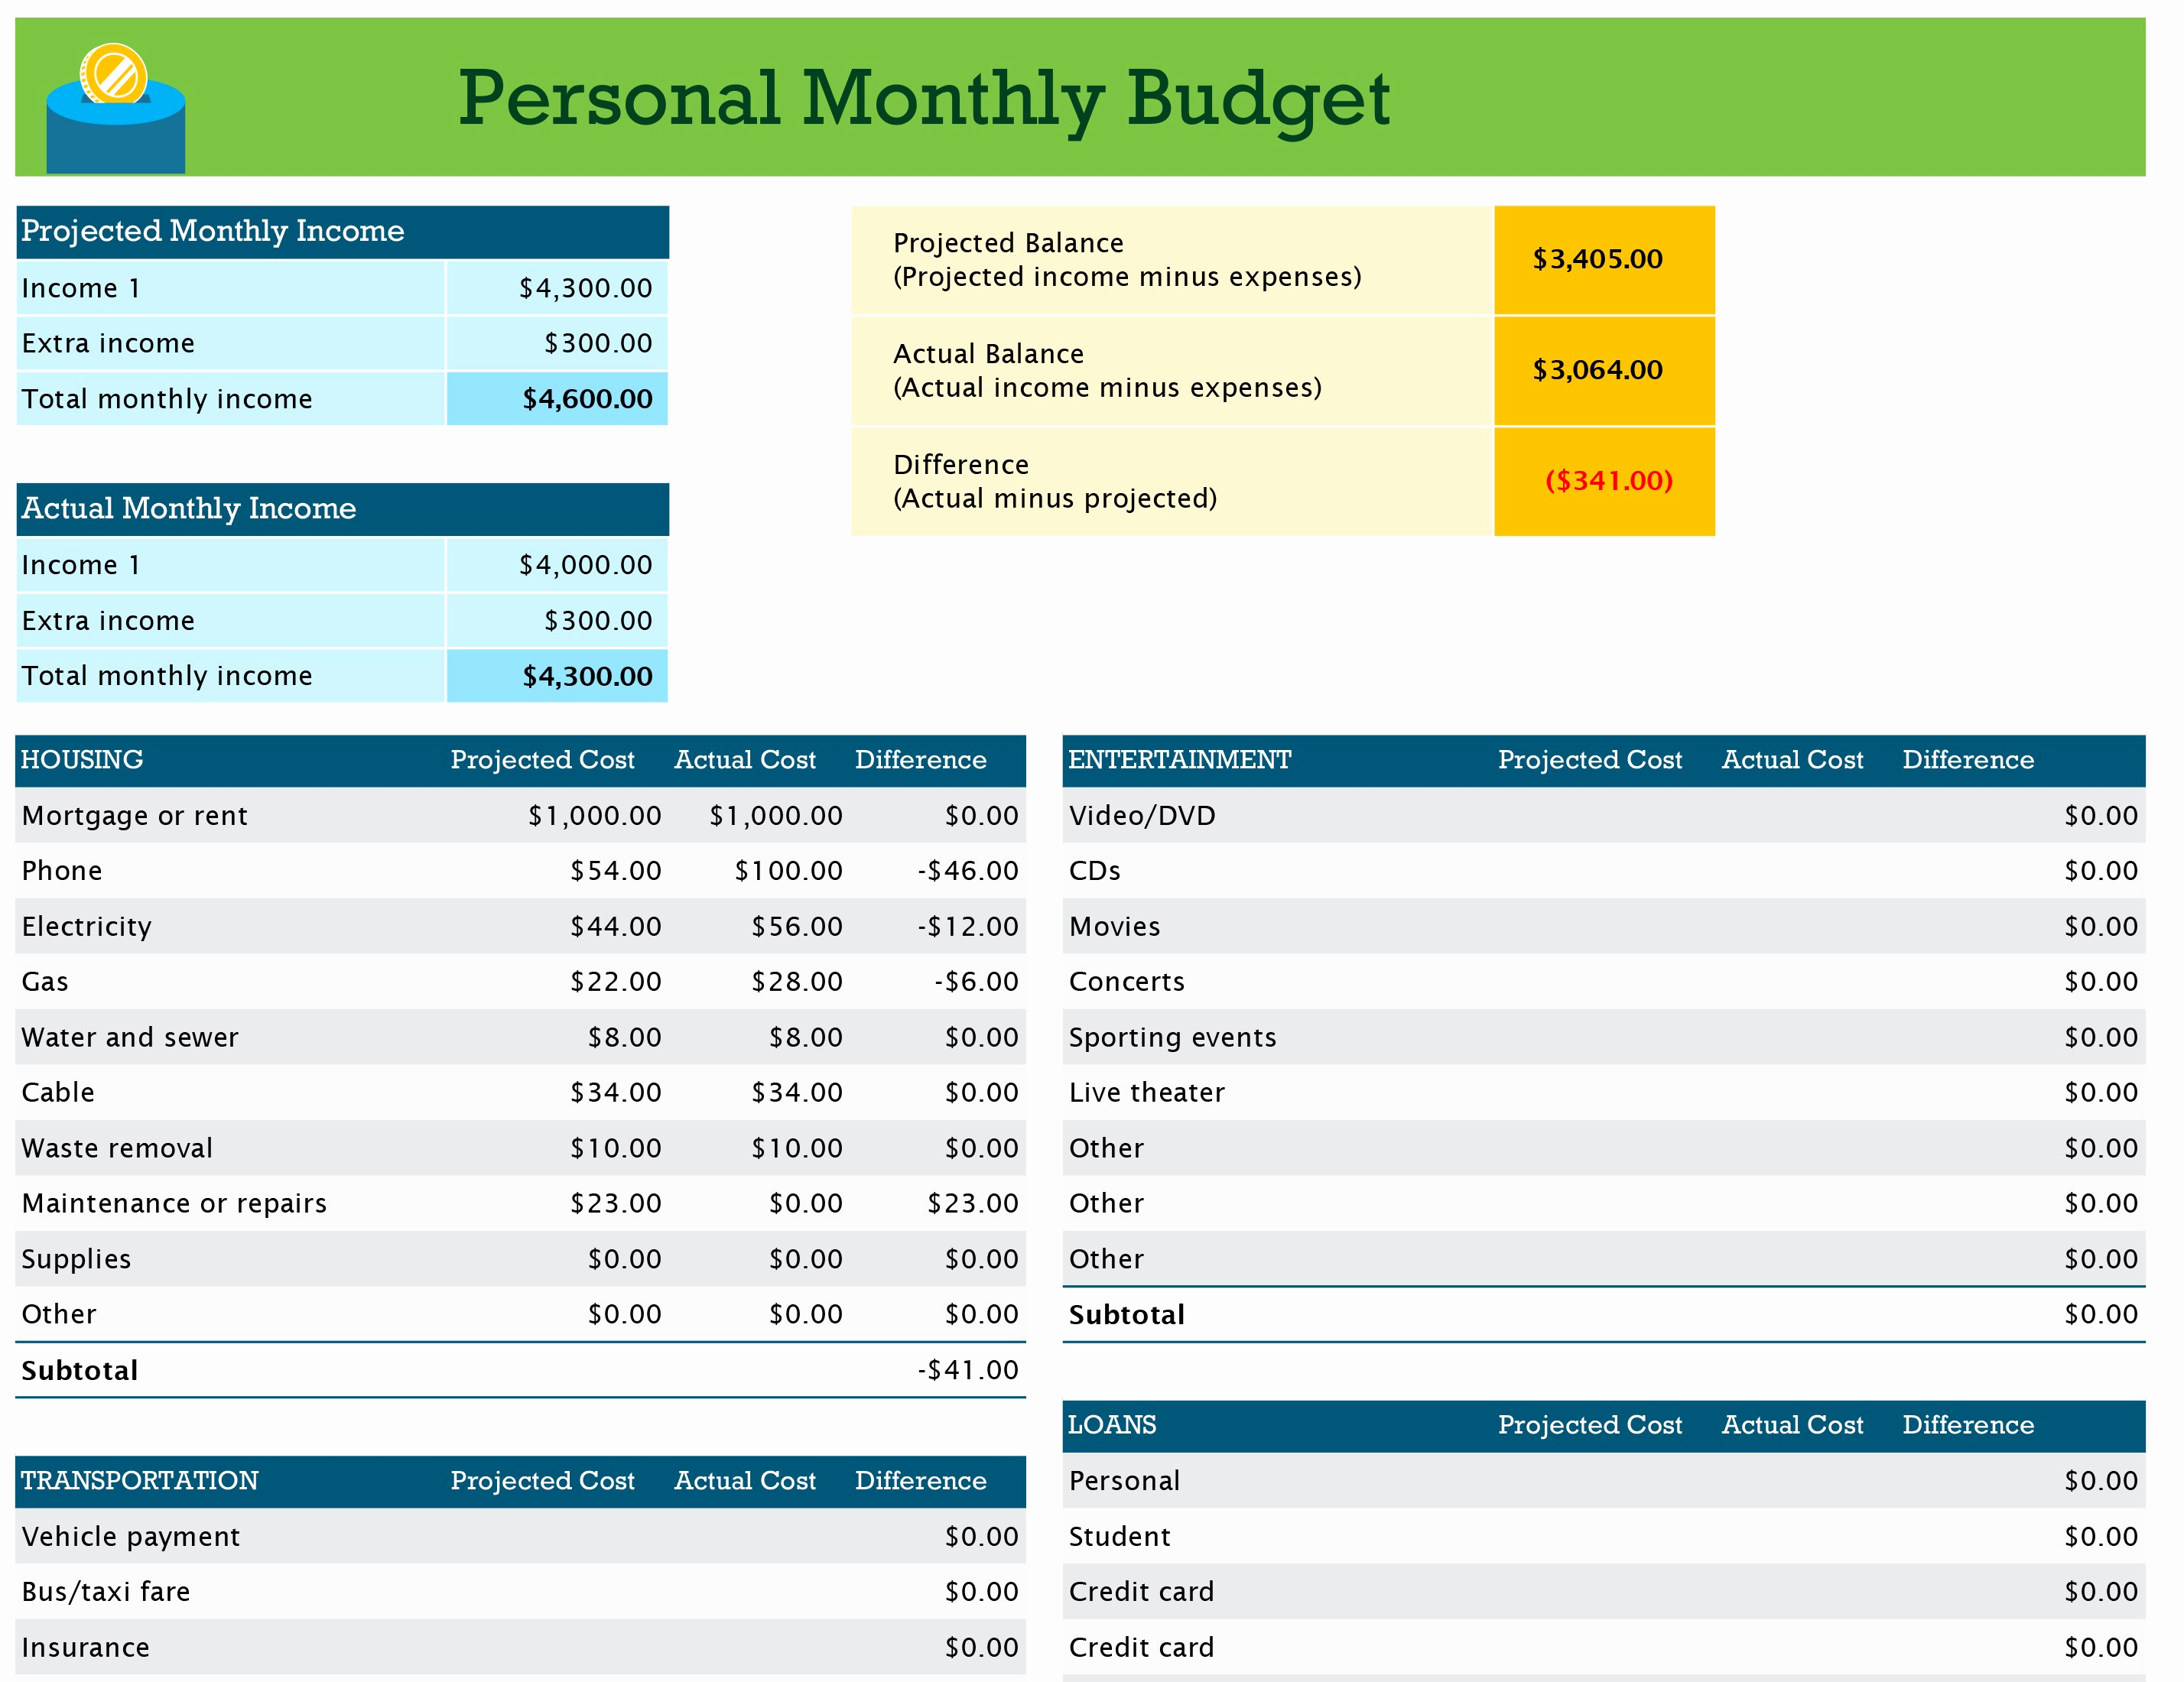 Monthly Budget Worksheet Excel New Personal Monthly Bud